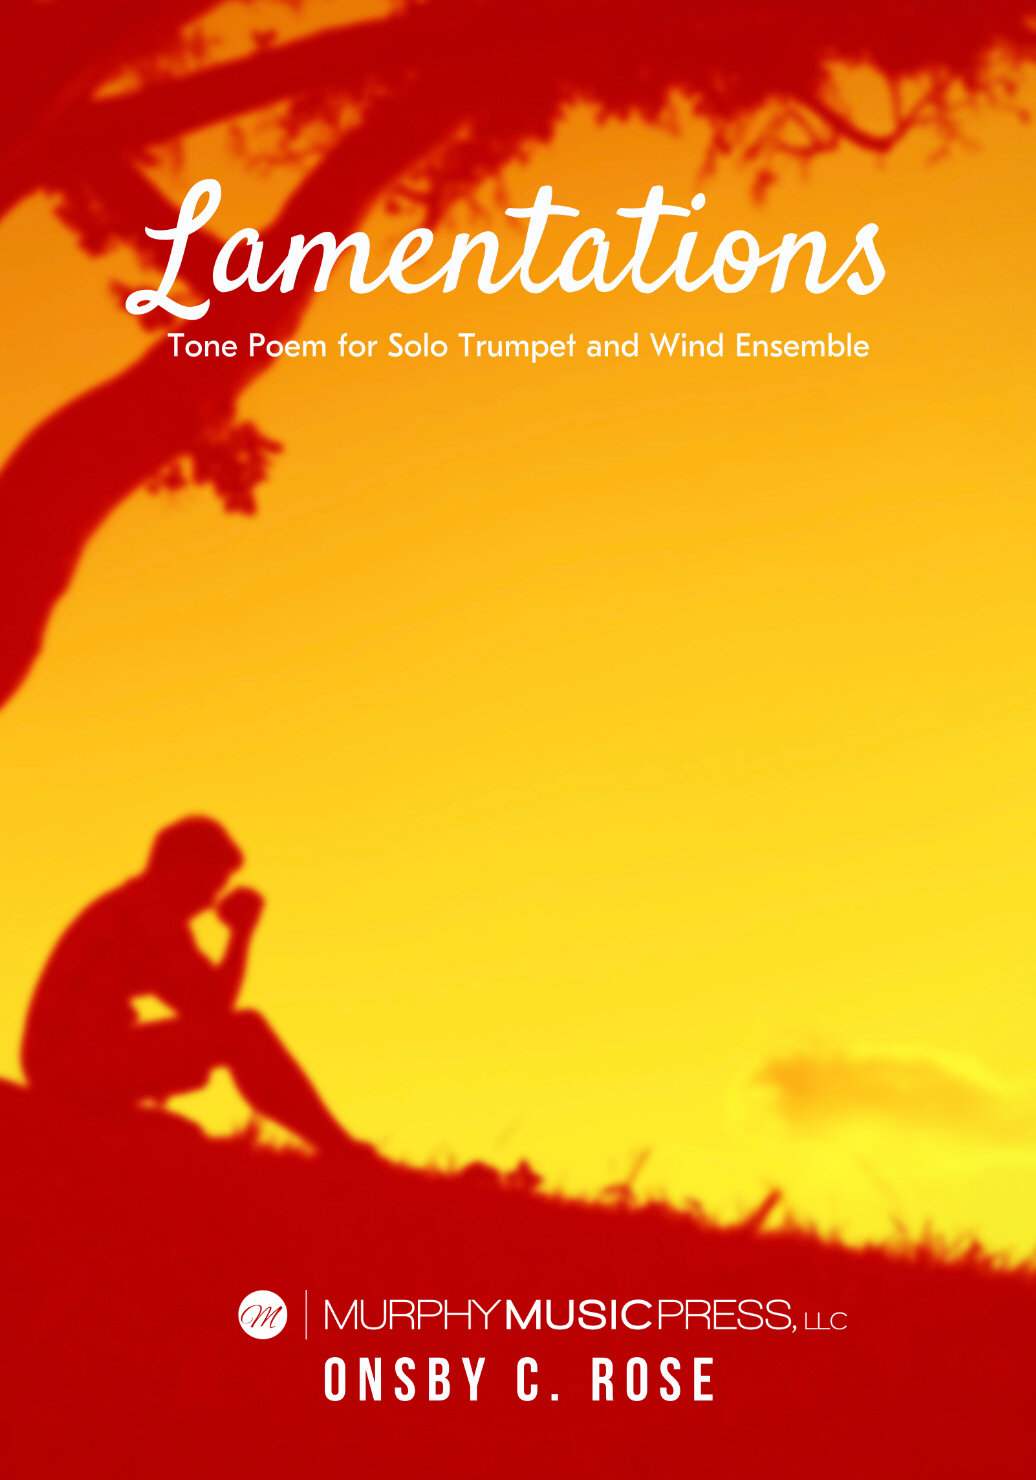 Lamentations For Trumpet And Wind Ensemble by Onsby C. Rose